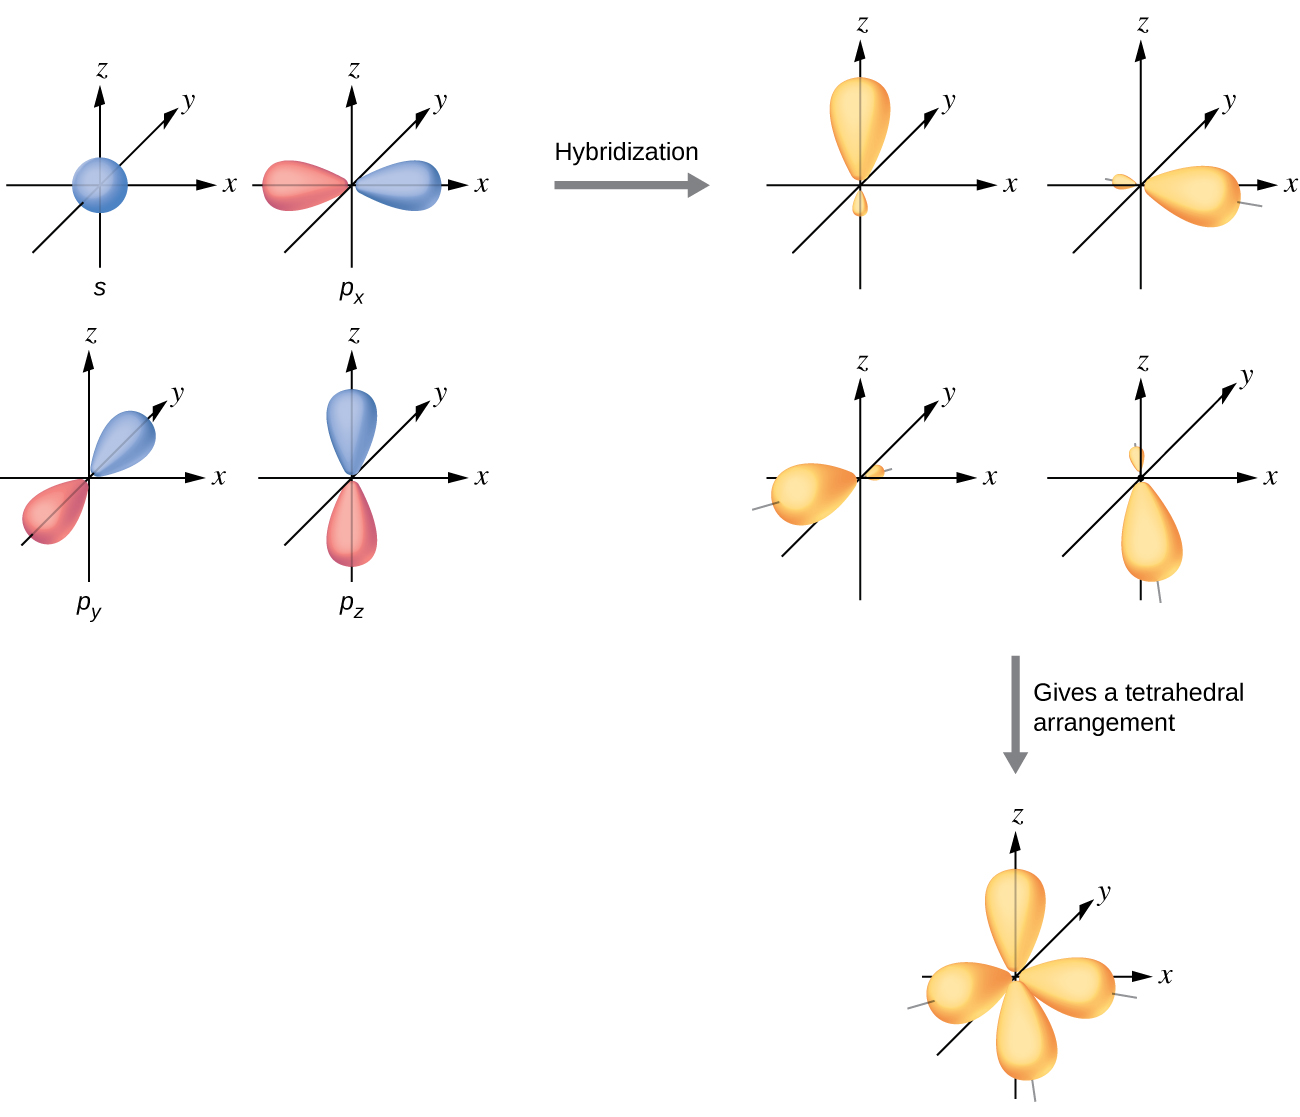 """A series of three diagrams connected by a right-facing arrow that is labeled, """"Hybridization,"""" and a downward-facing arrow labeled, """"Gives a tetrahedral arrangement,"""" are shown. The first diagram shows a blue spherical orbital and three red, peanut-shaped orbitals, each placed on an x, y, z axis system. The three red orbitals are located on the x , y and z axes, respectively. The second diagram shows the same four orbitals, but they are now purple and have one enlarged lobe and one smaller lobe. Each lies in a different axis in the drawing. The third diagram shows the same four orbitals, but their smaller lobes now overlap to form a tetrahedral structure."""